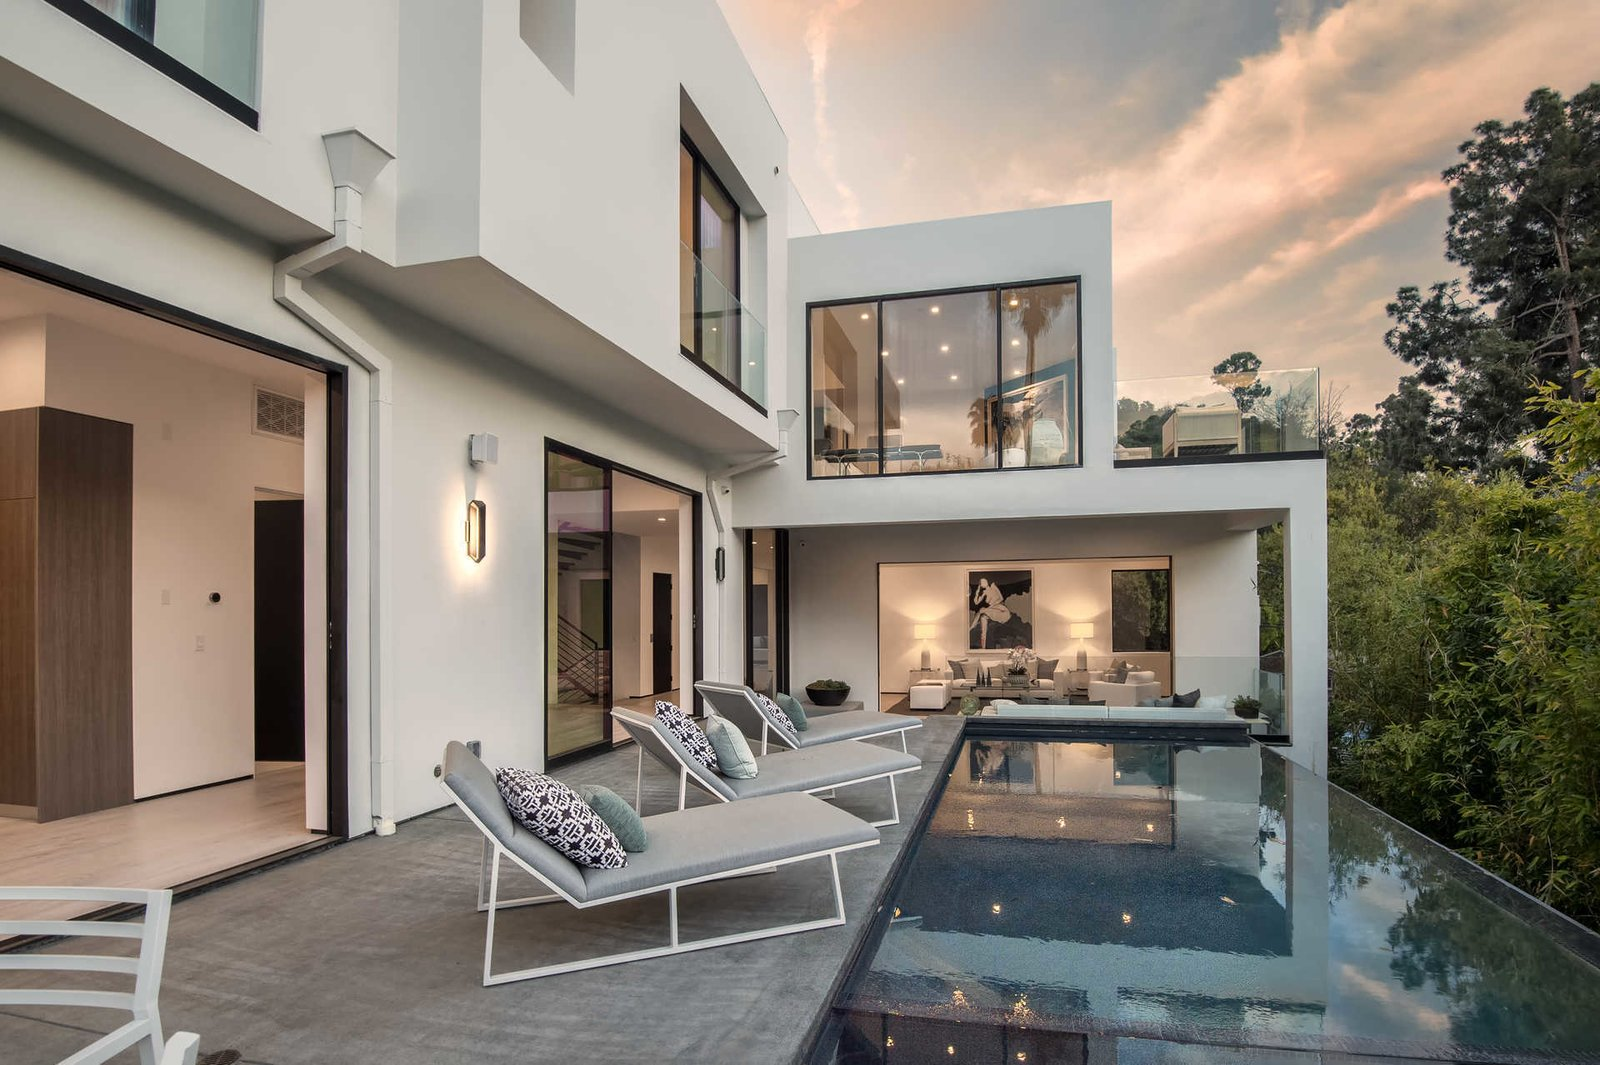 The swimming pool spills over lush canyon views.  Cherokee Contemporary by Luxury Homes + Lifestyle